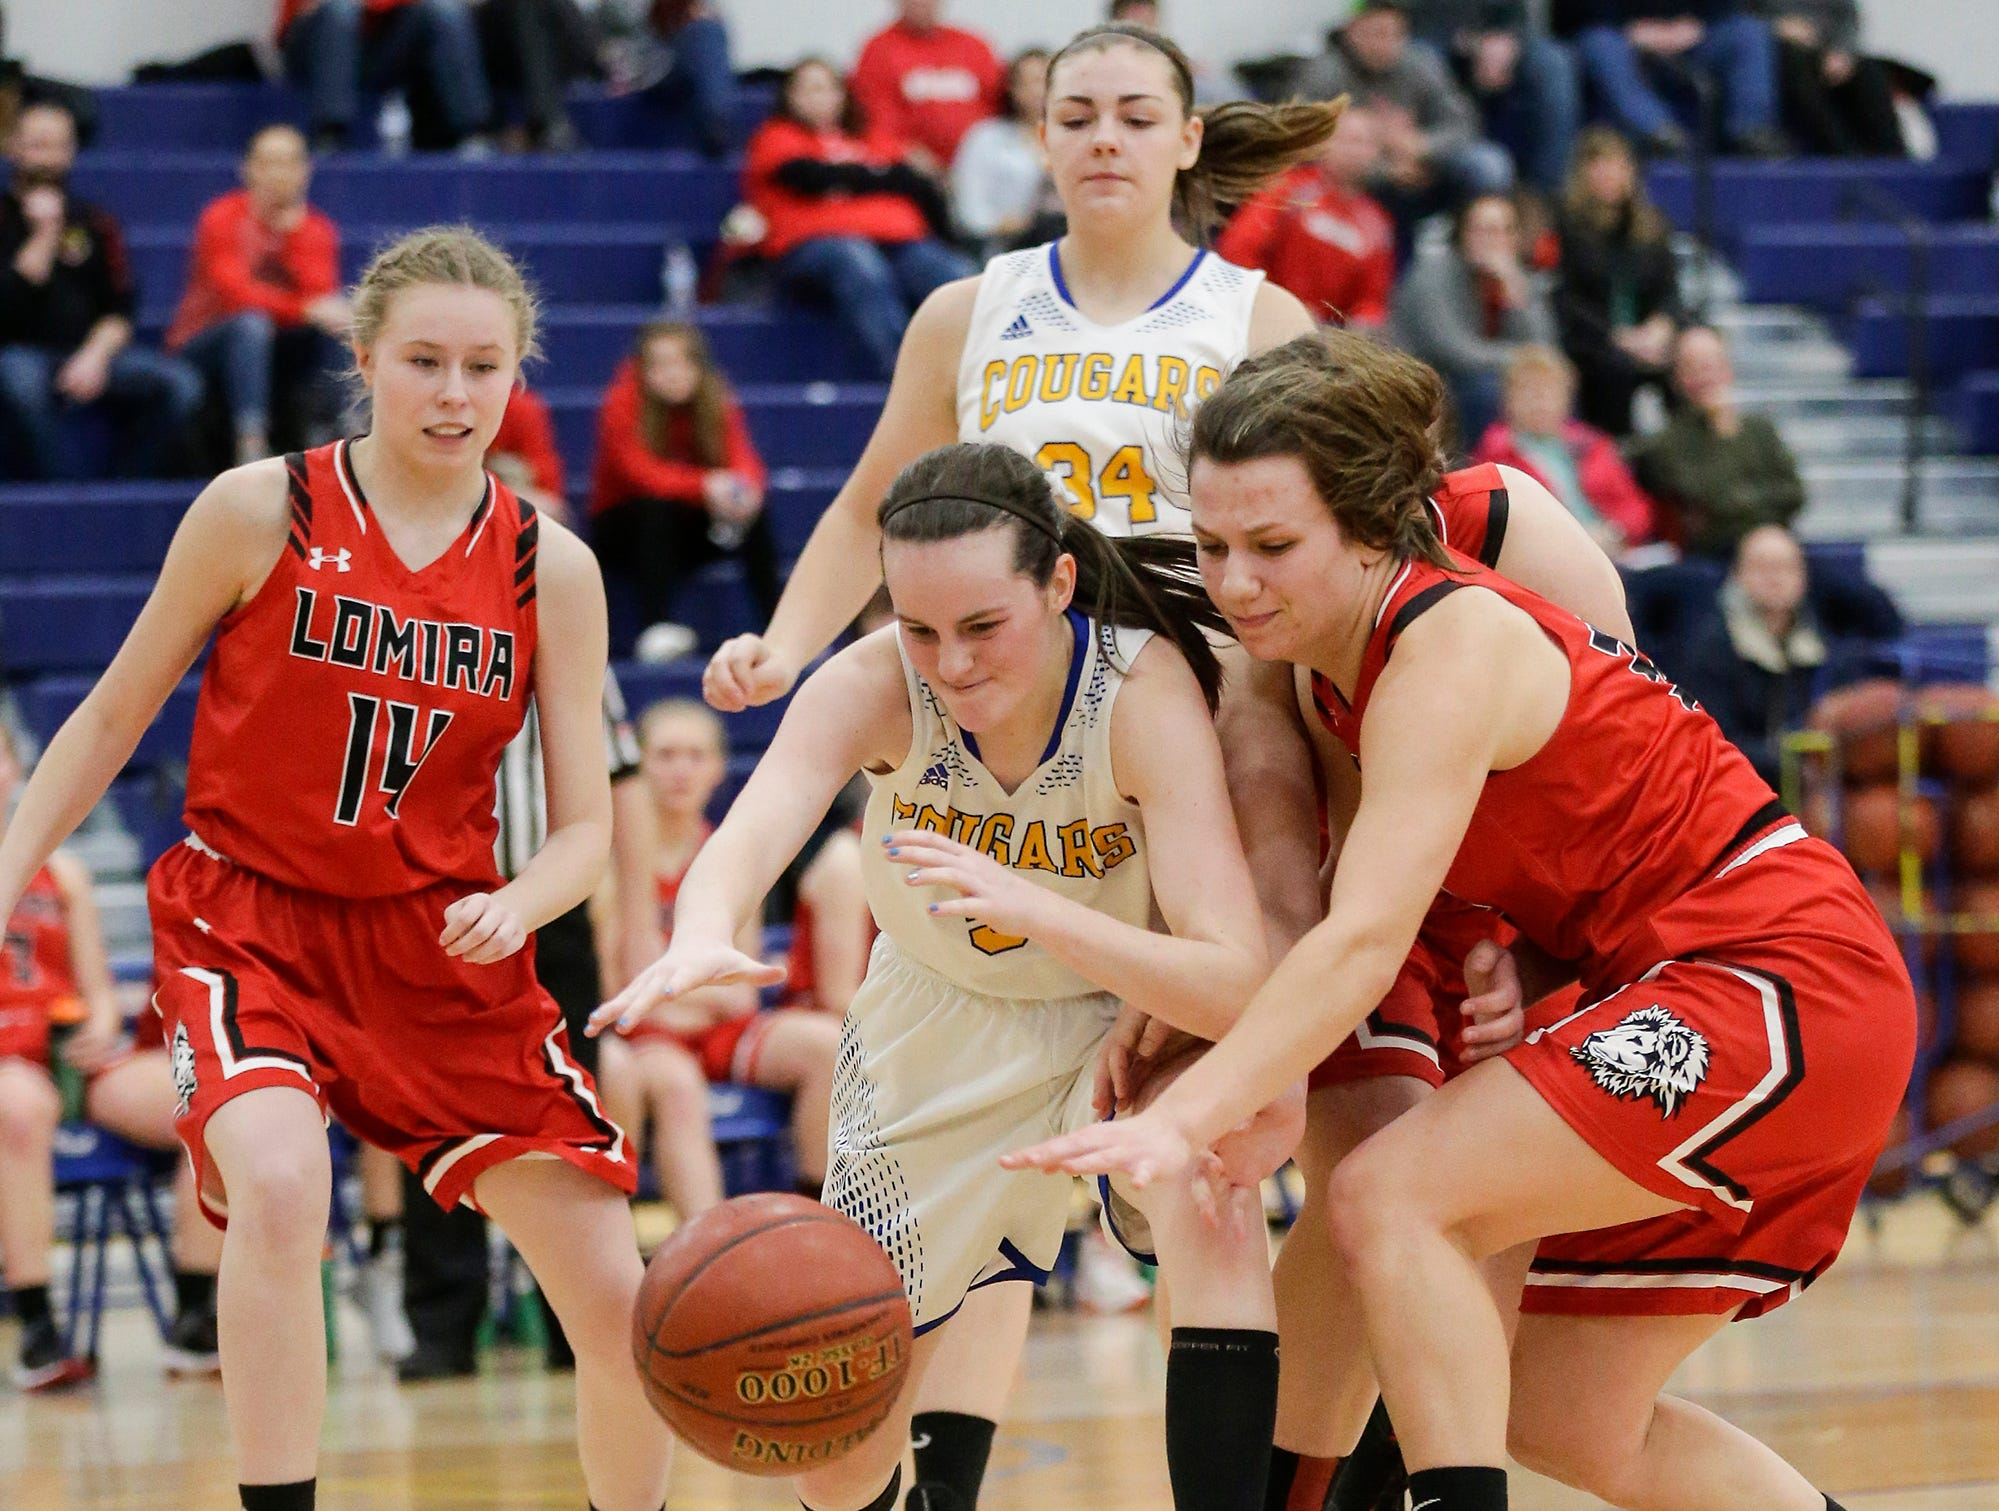 Campbellsport High School girls basketball's Morgan Fryman and Lomira High School's Crystal Geiger reach for a loose ball during their game Friday, December 28, 2018 in Campbellsport. Doug Raflik/USA TODAY NETWORK-Wisconsin